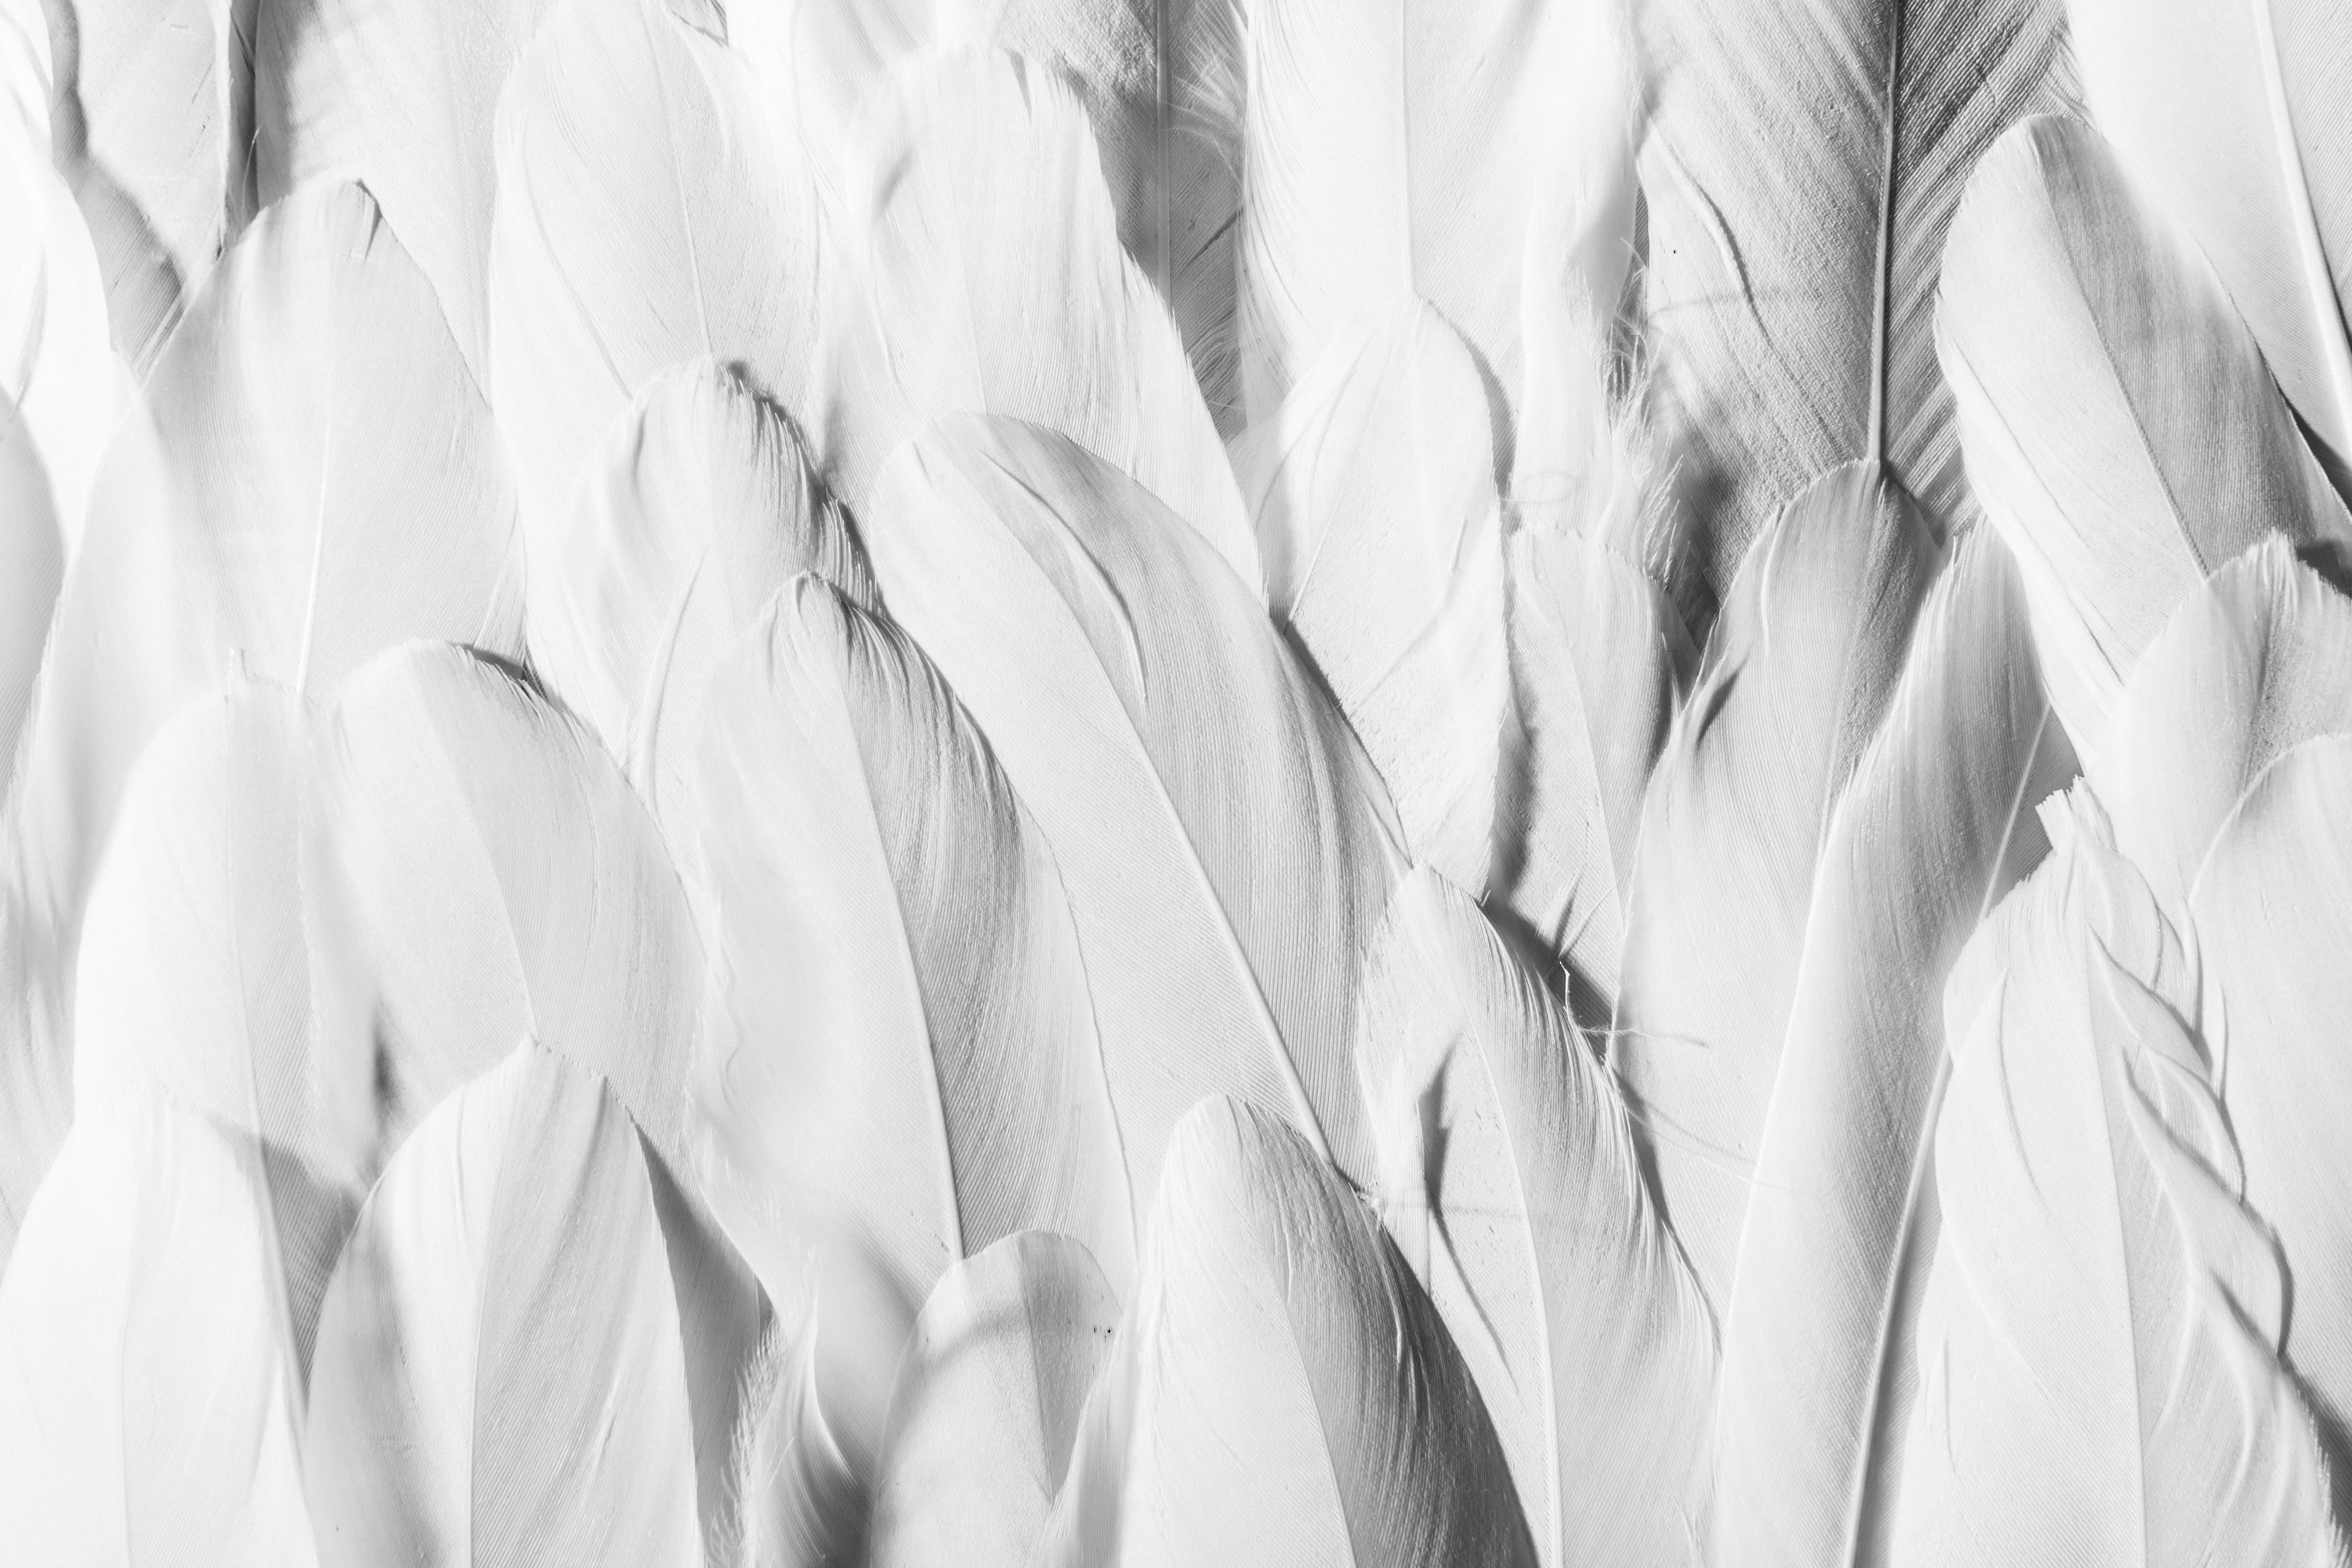 closeup of white feathers